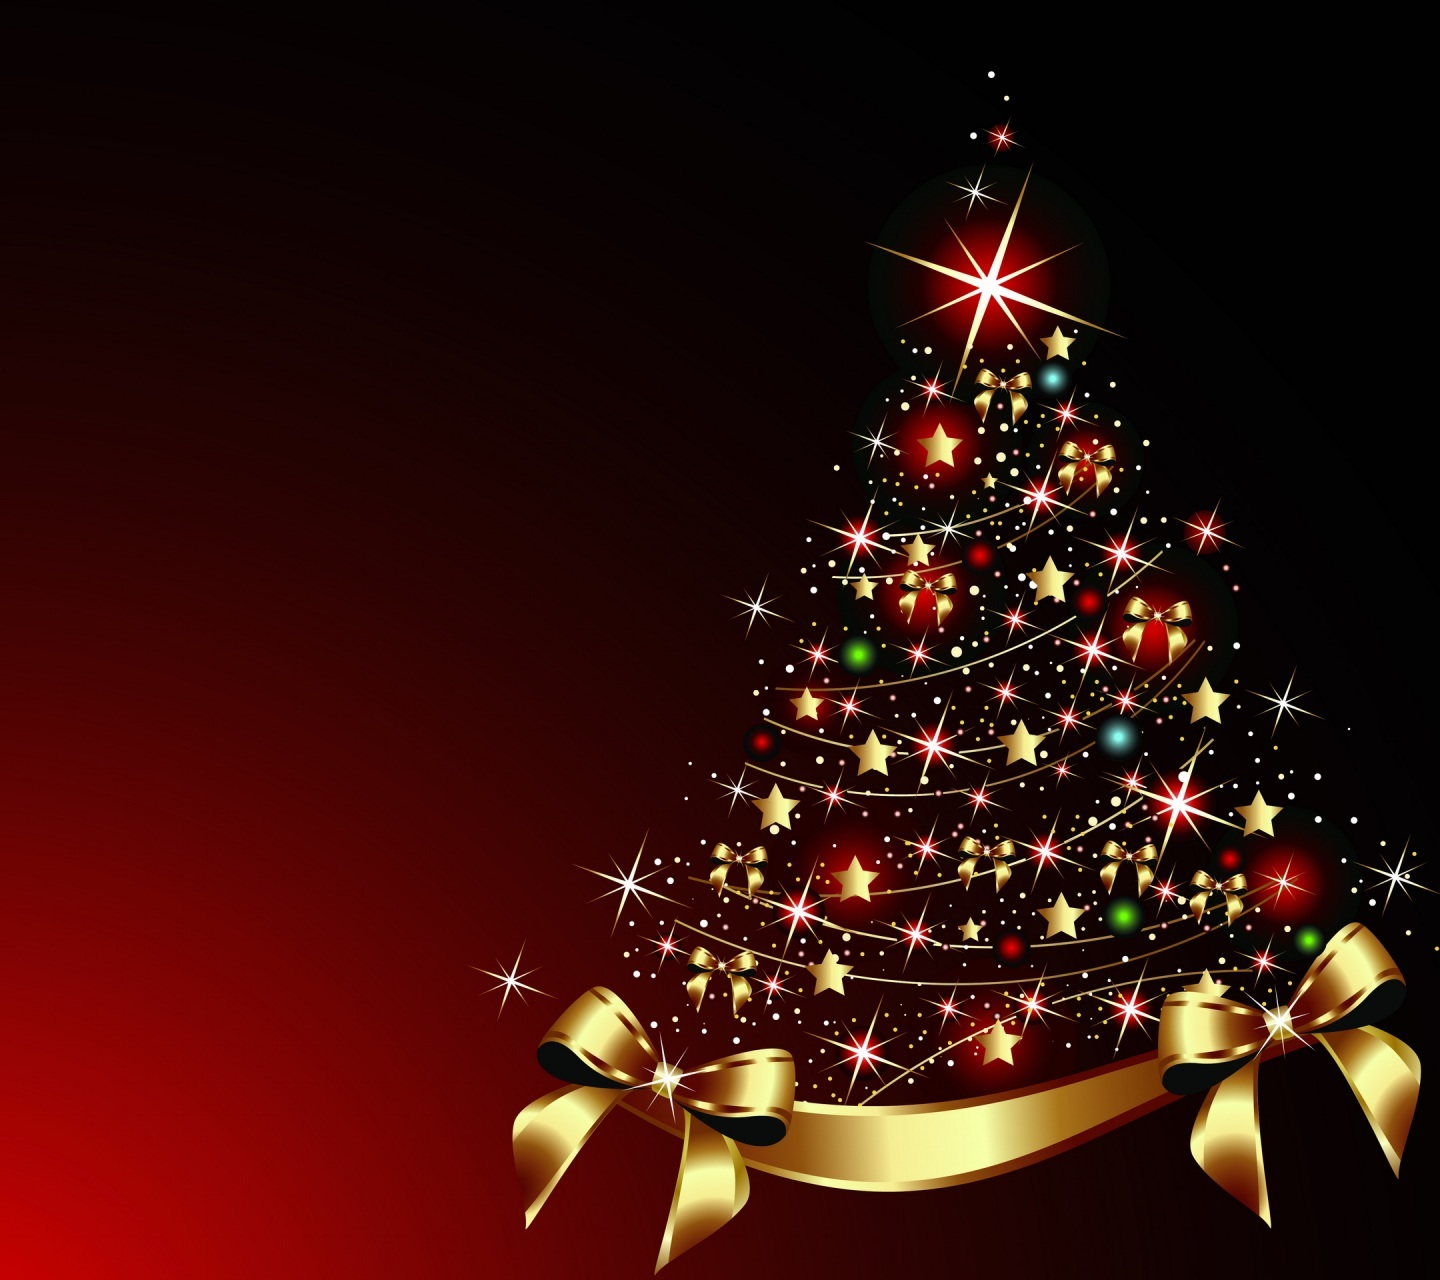 Collection of Christmas Tree Desktop Backgrounds on HDWallpapers